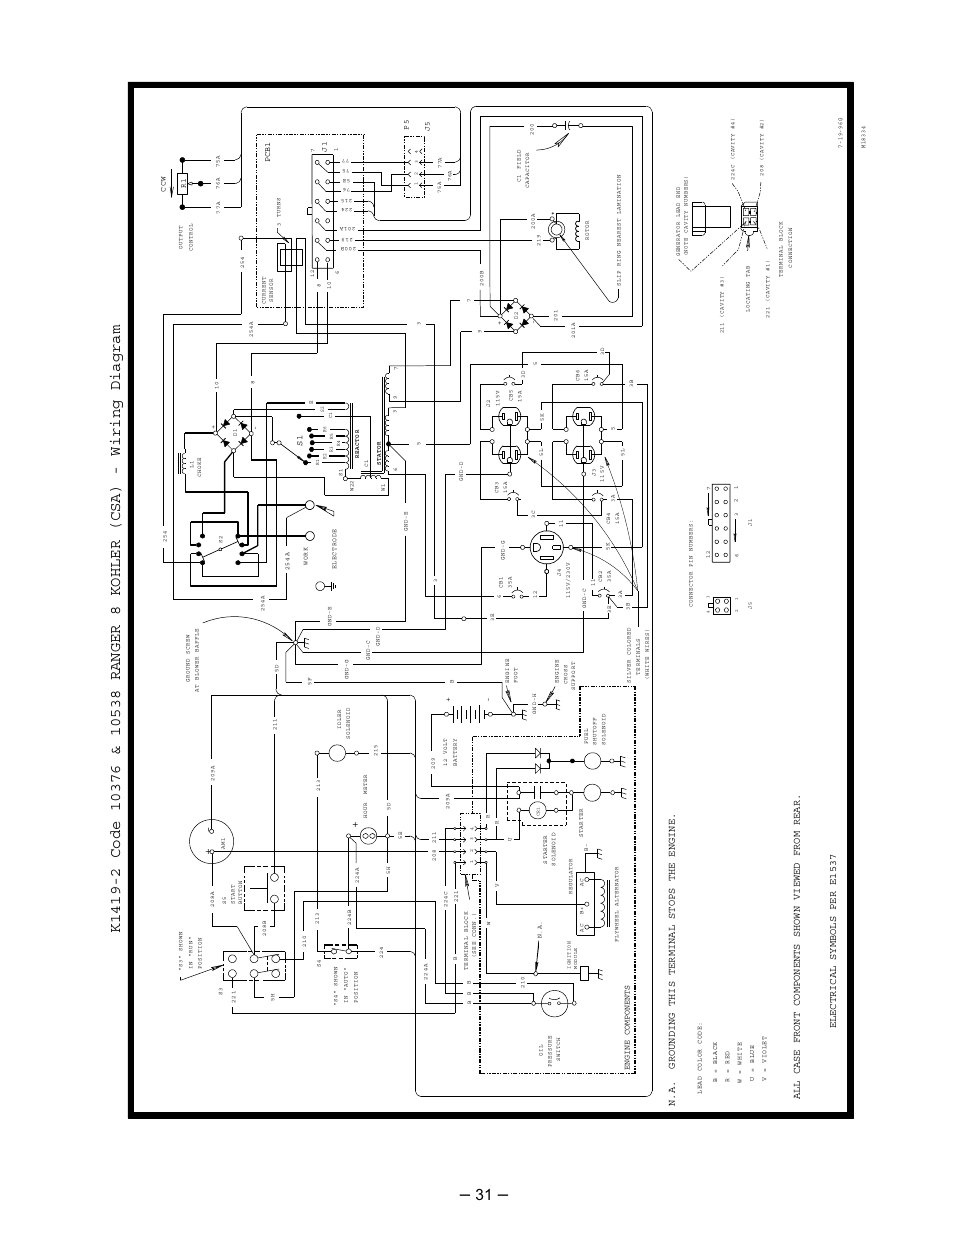 Electrical symbols per e1537      Lincoln       Electric    IM510